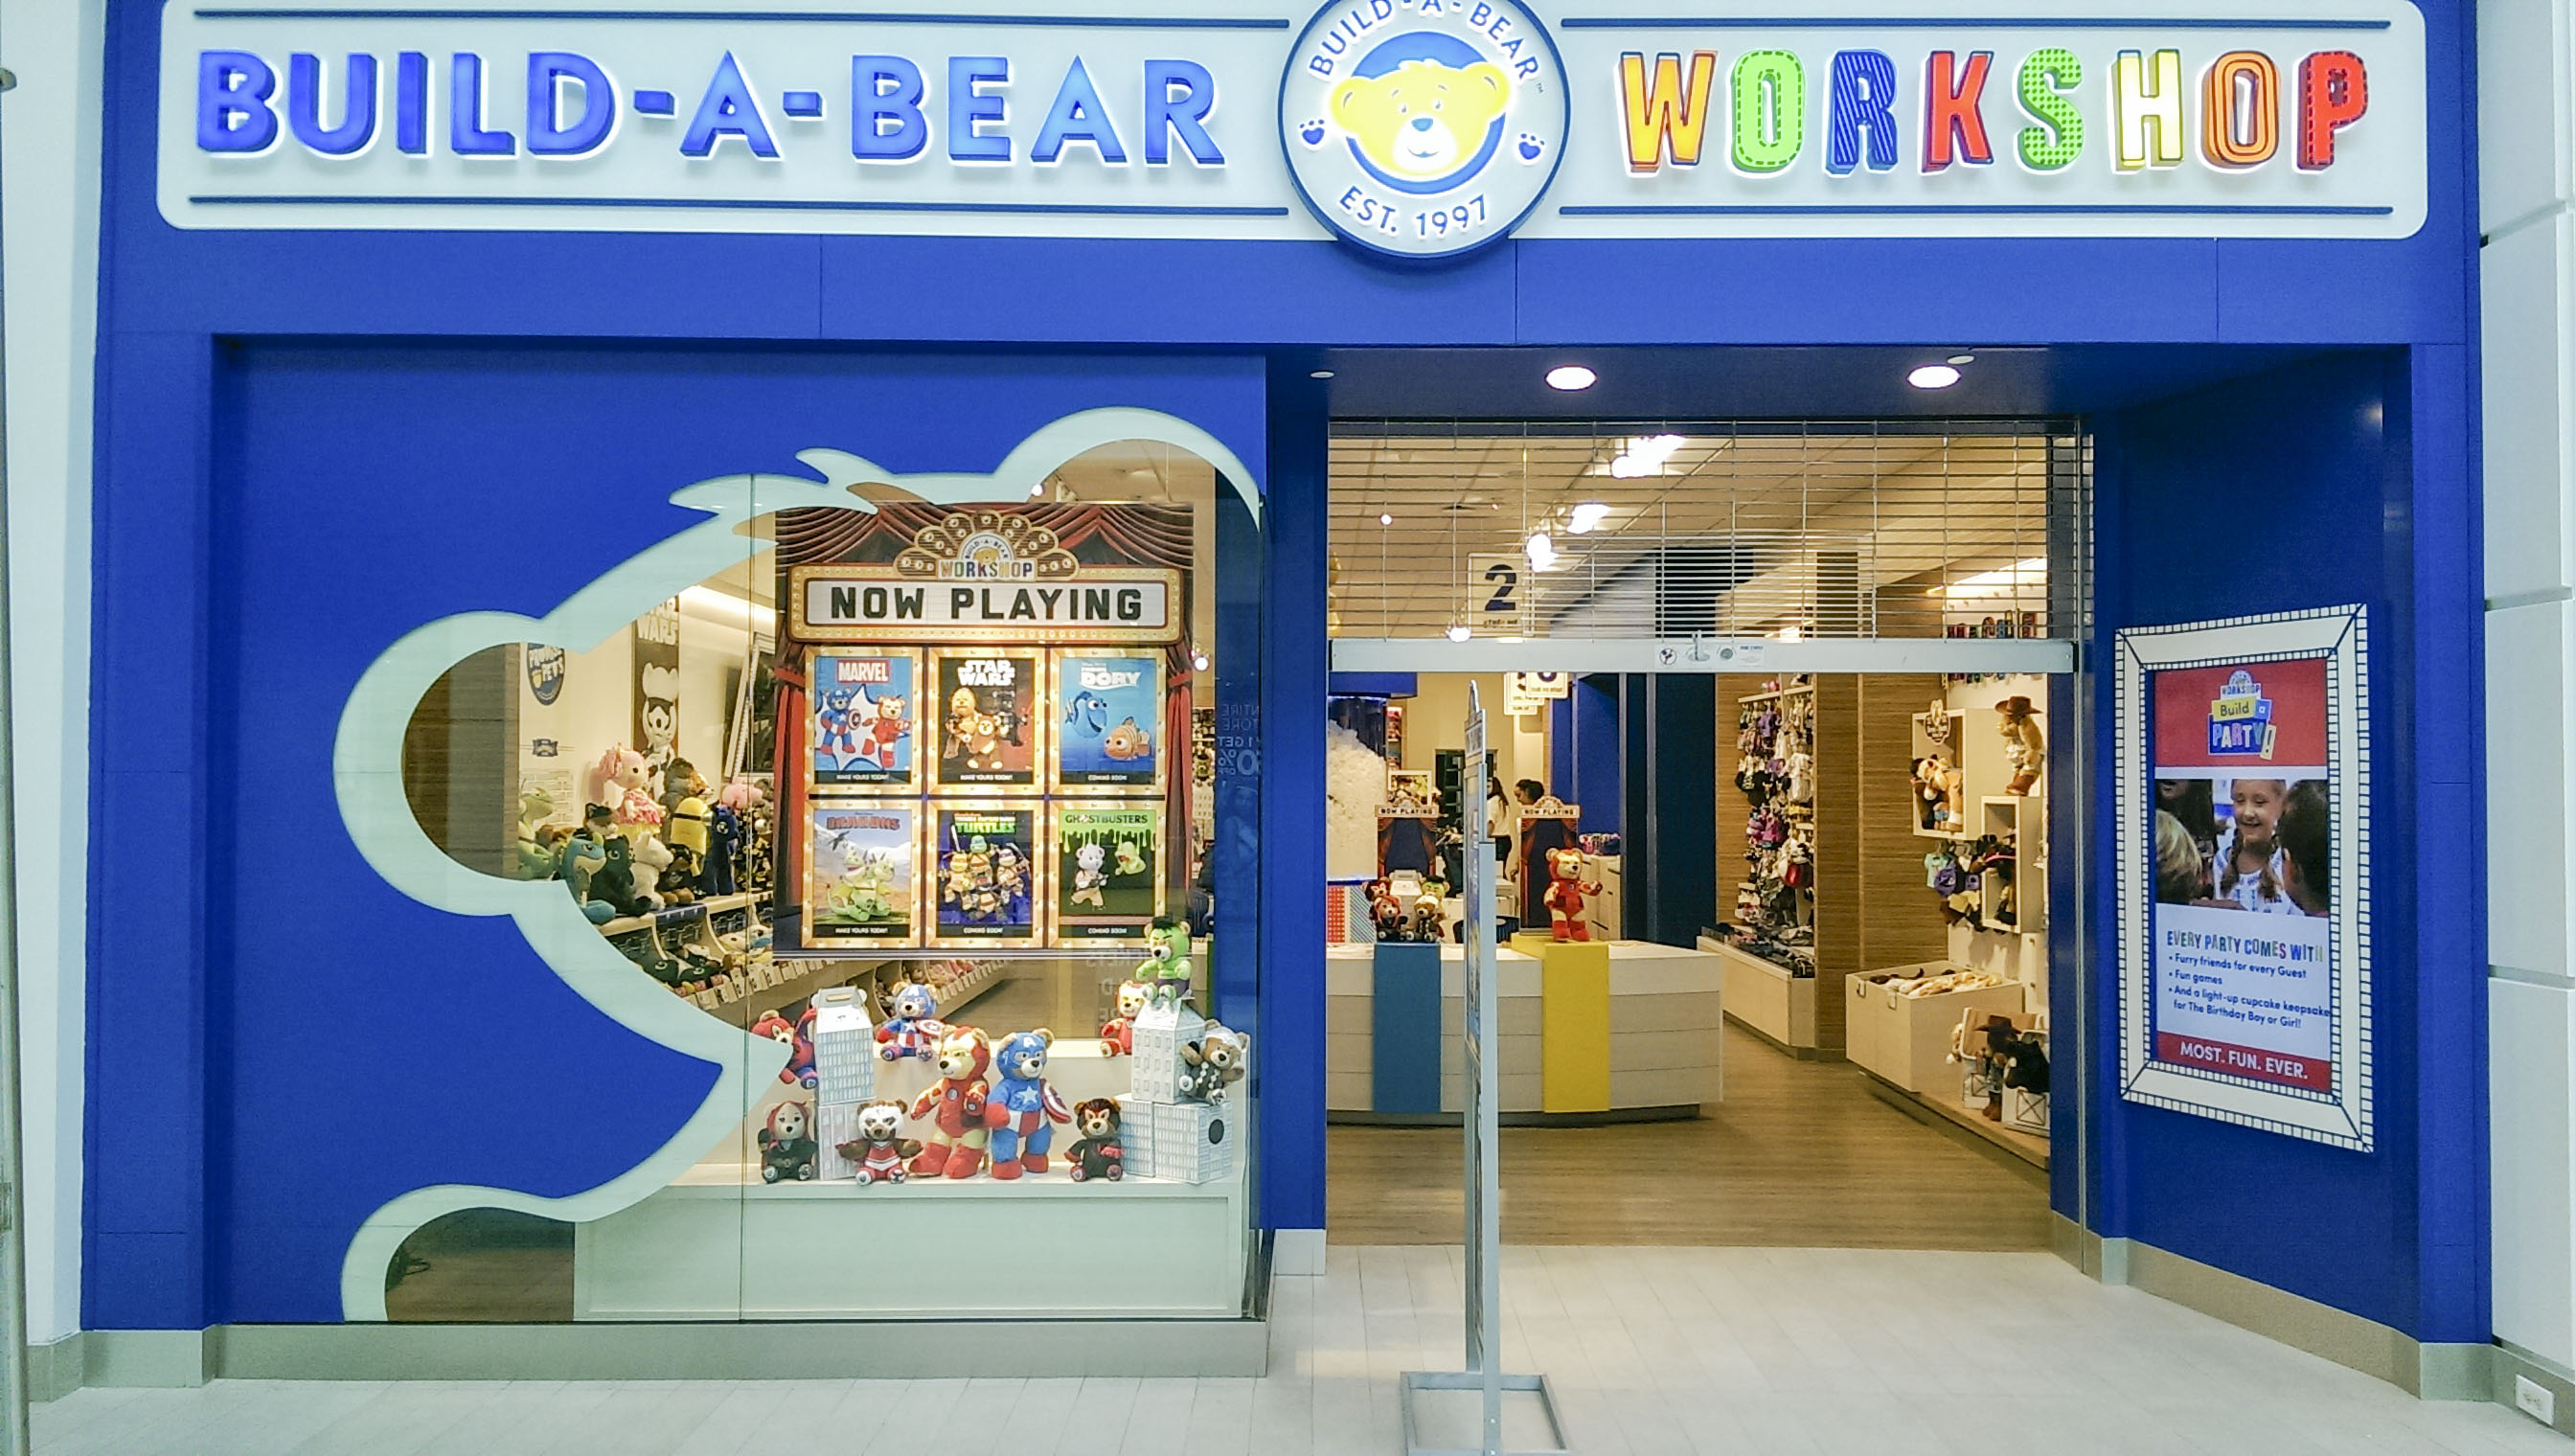 www how to build a bear.com